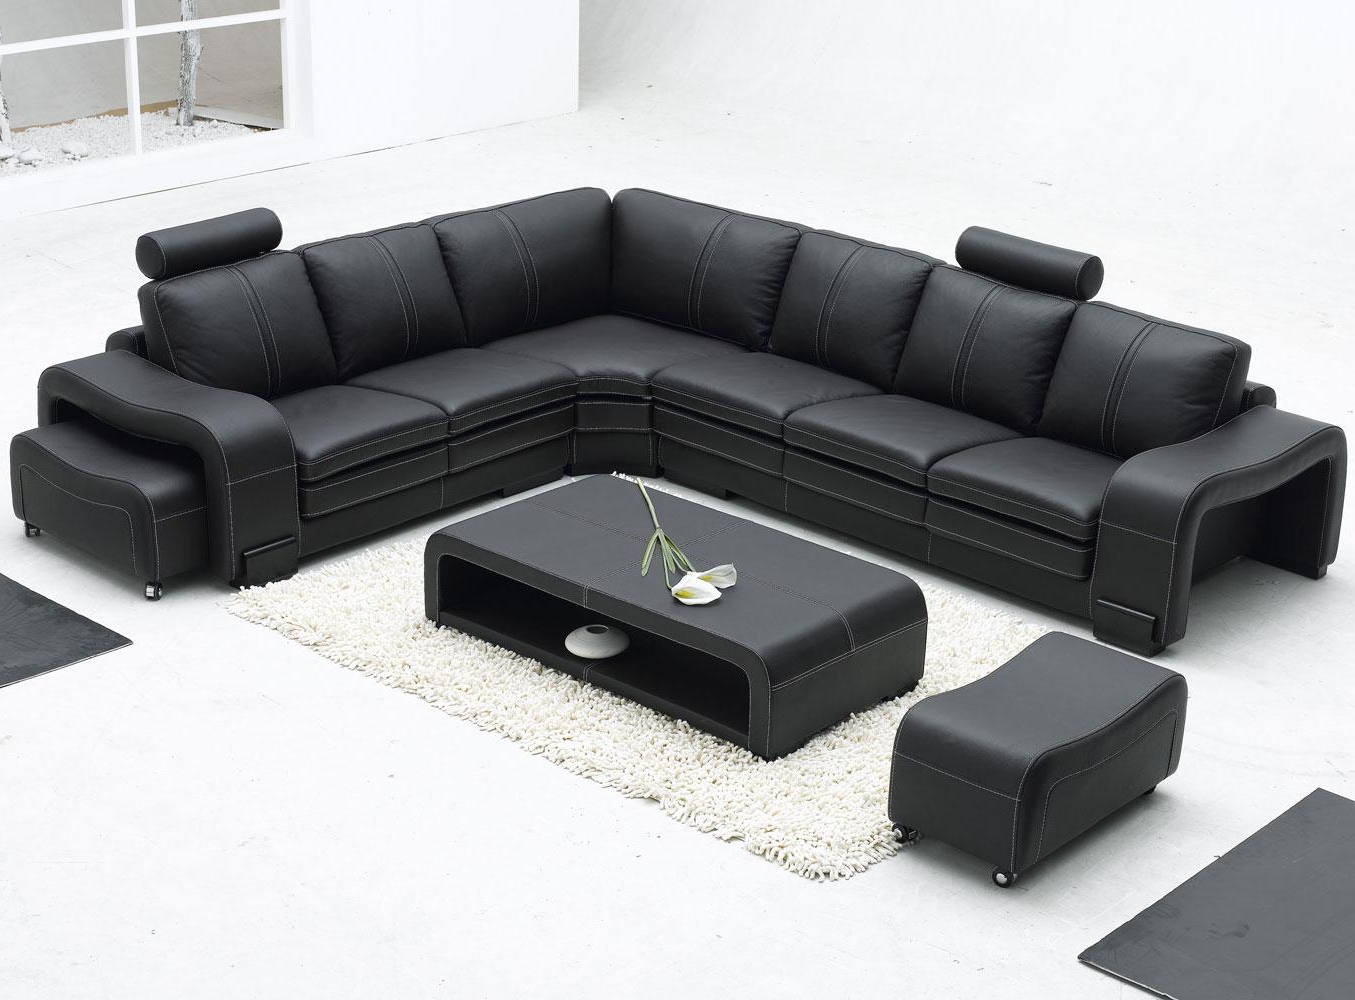 High Quality Leather Sectional Sofas – Home Decor 88 In Famous Tenny Dark Grey 2 Piece Right Facing Chaise Sectionals With 2 Headrest (View 8 of 20)